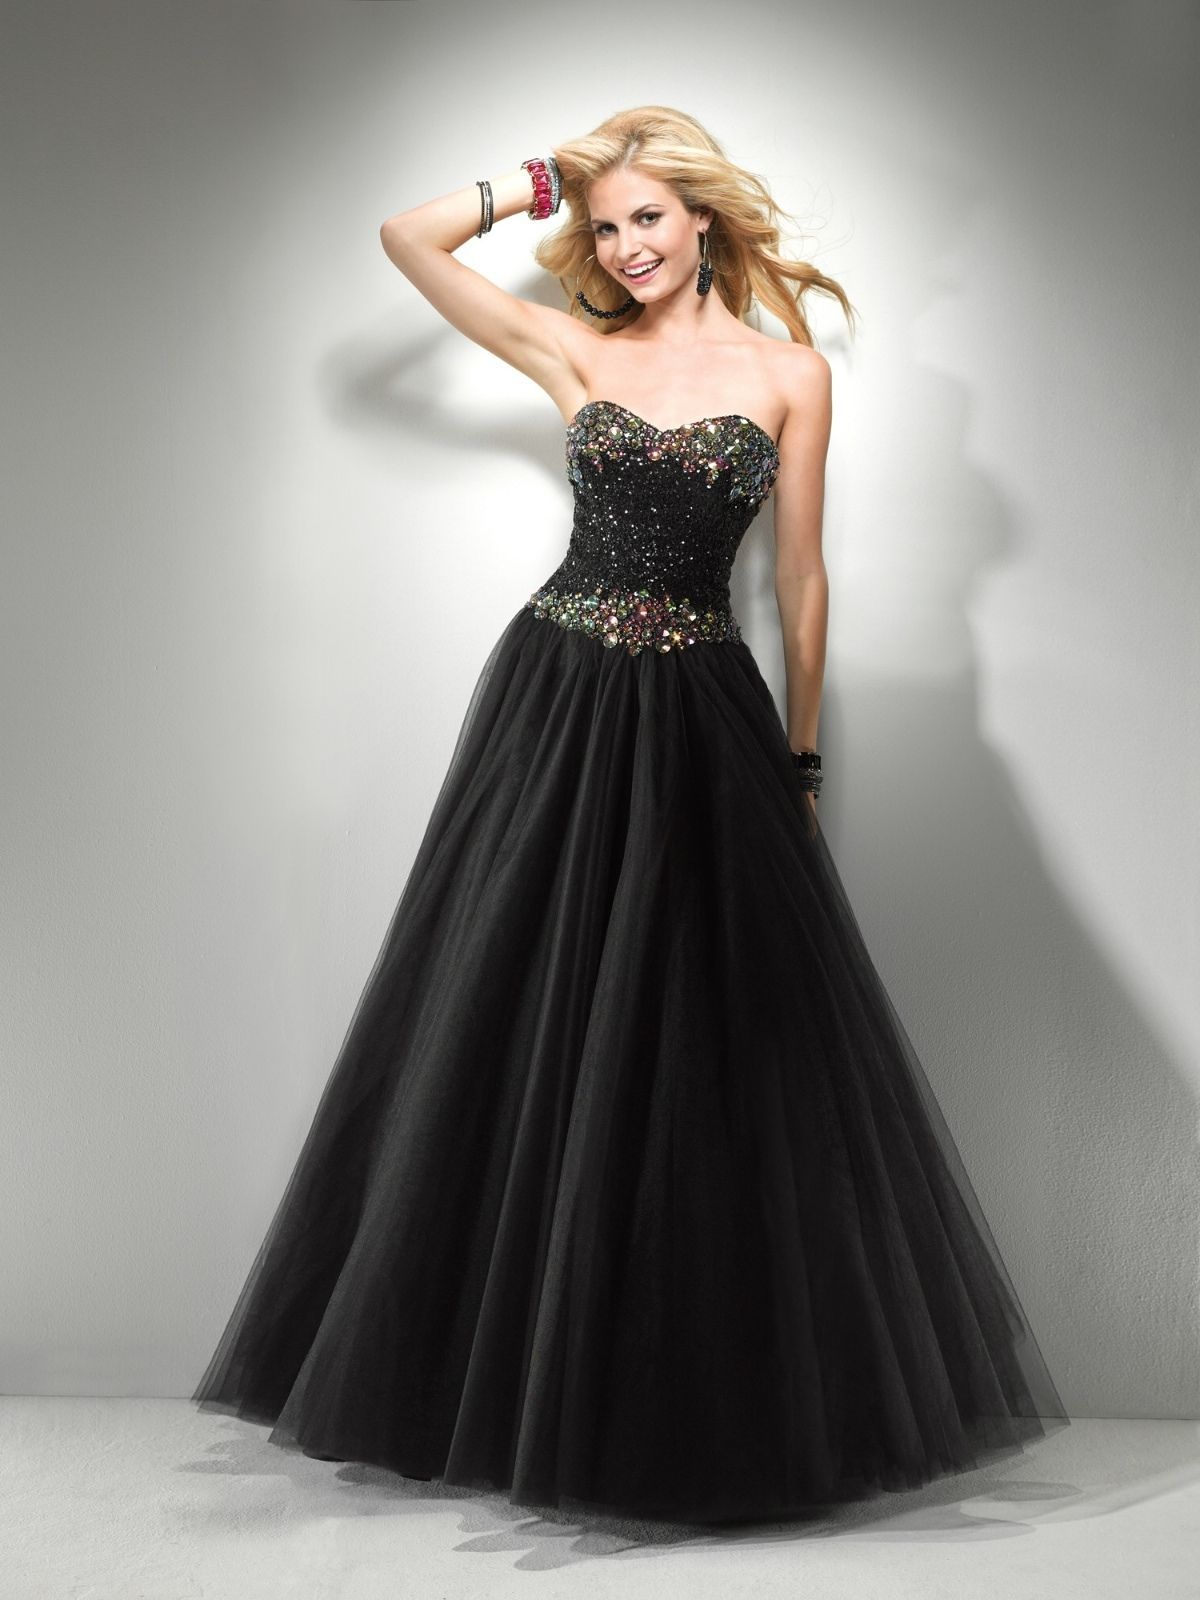 Image 5 of Sexy Strapless Black or Pink Beaded Prom Pageant Evening Gown Dress, Flirt 5794